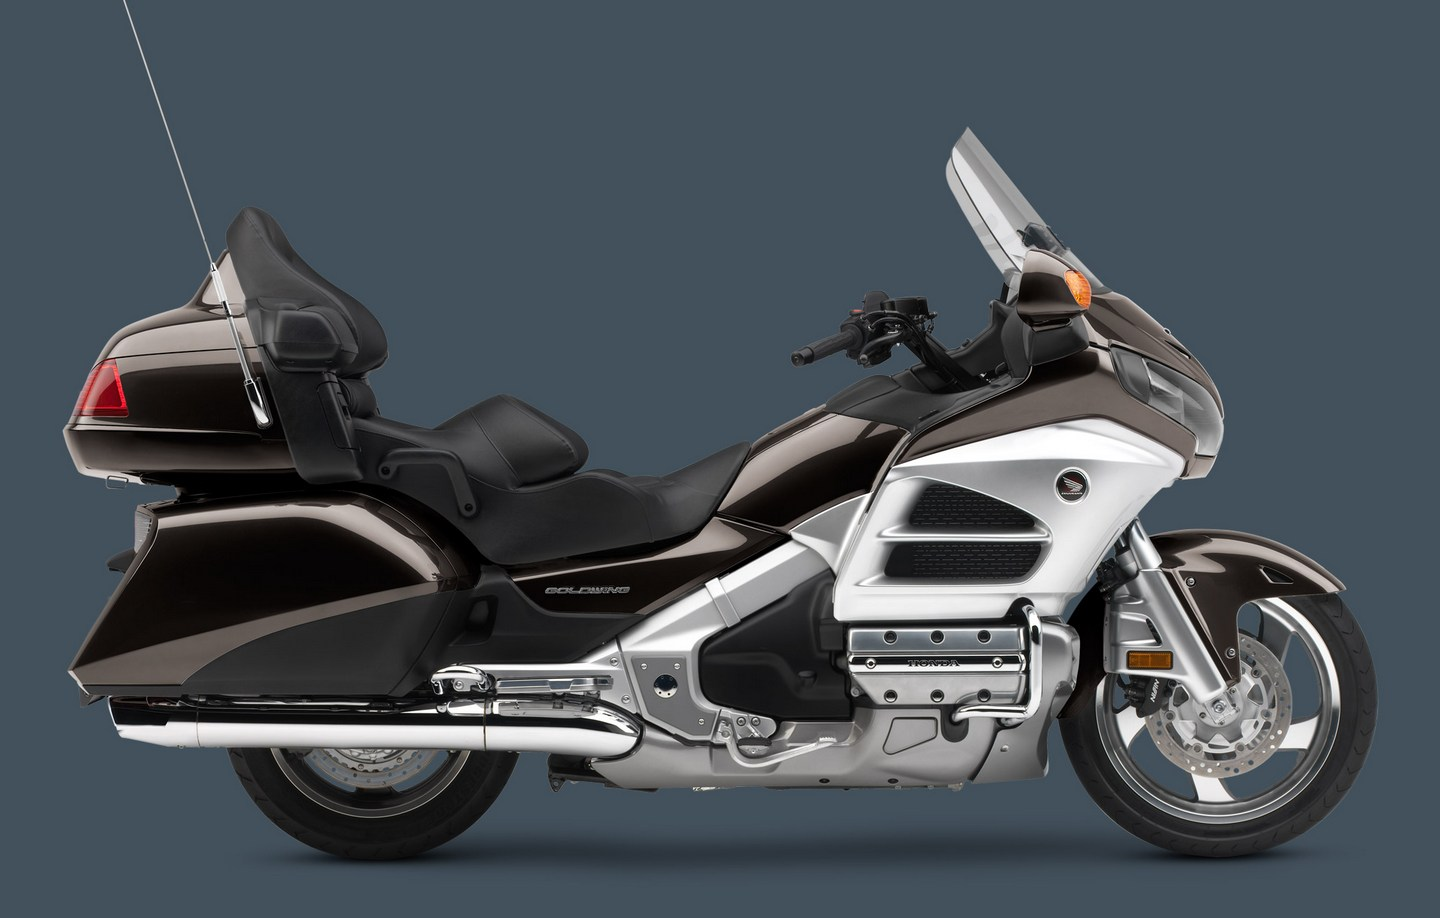 2013 Honda Goldwing Colors and Pricing - autoevolution